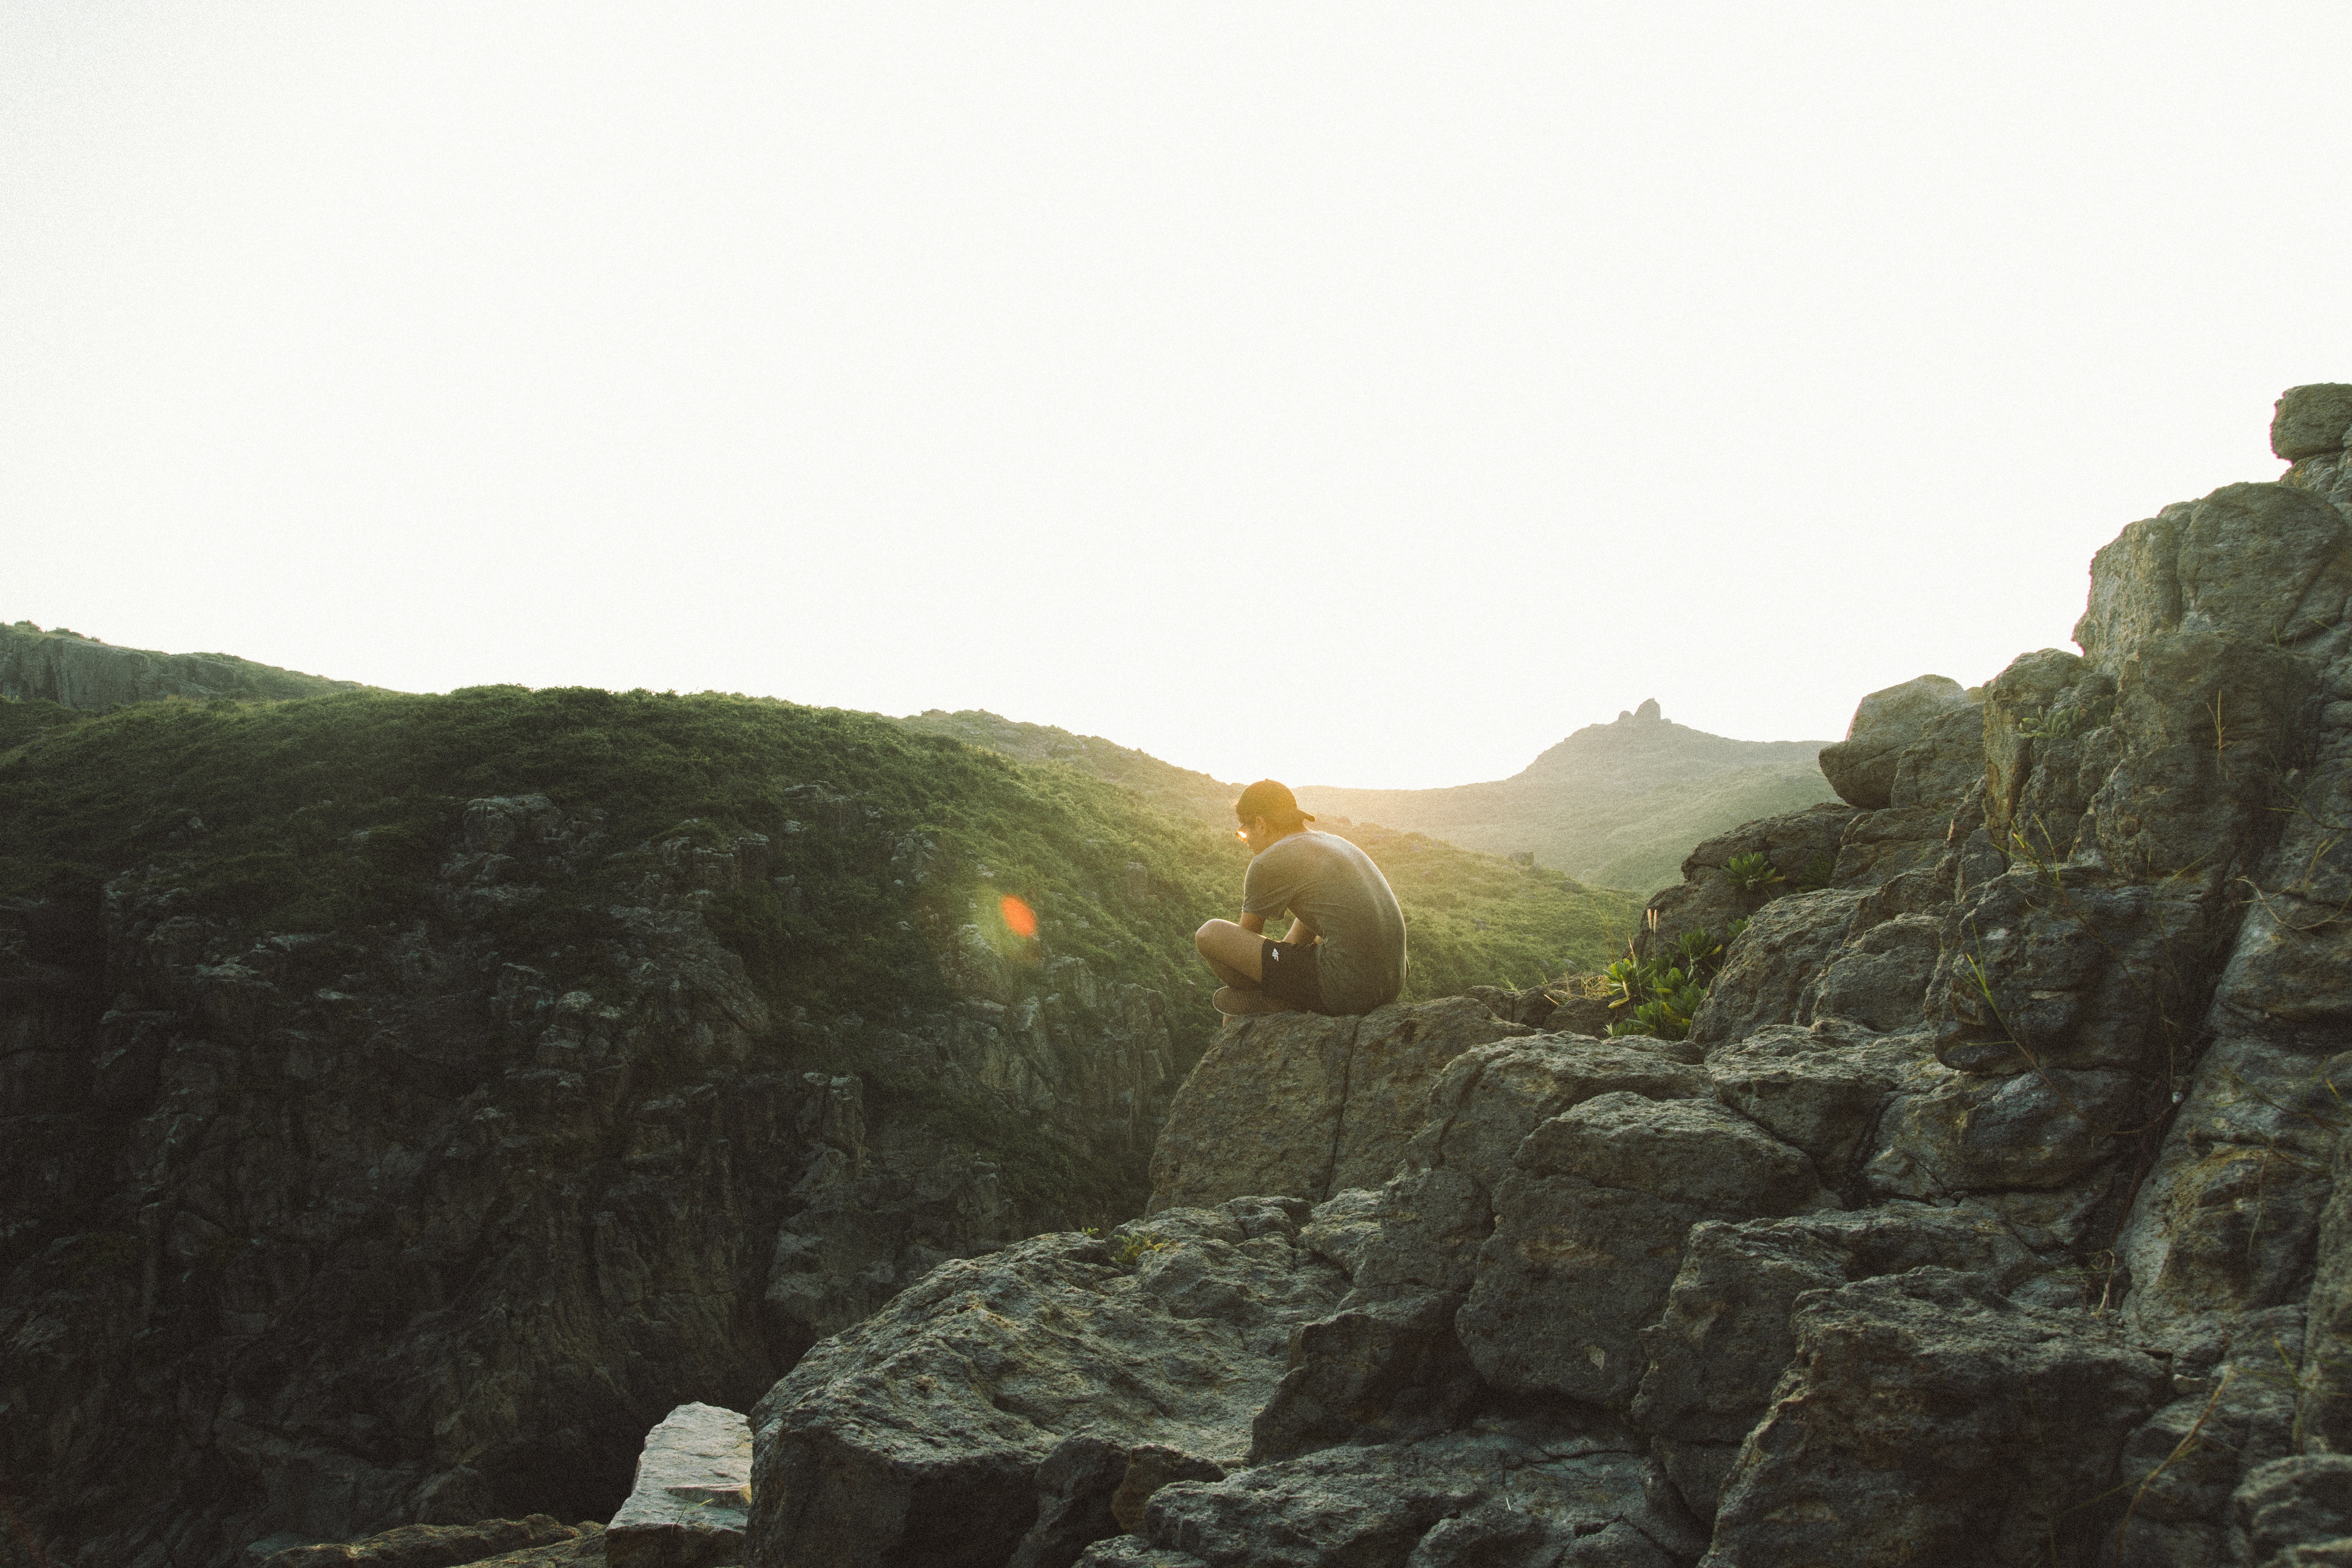 Man sitting on the stone edge of a mountain in Hong Kong during sunset